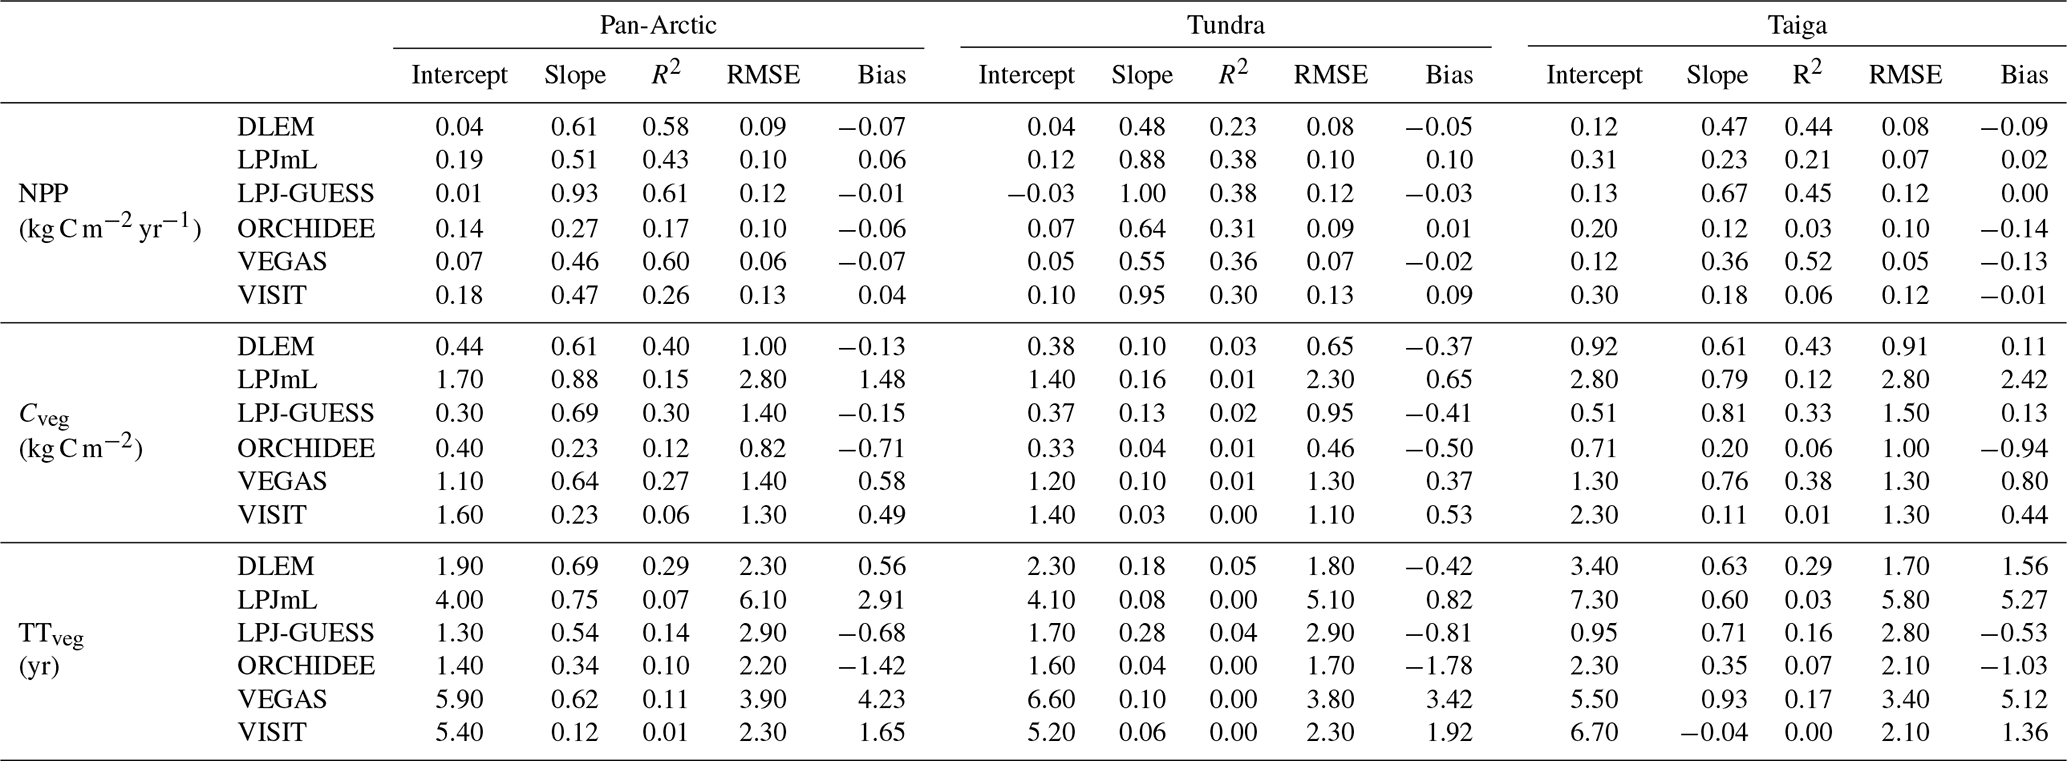 ESD - Evaluation of terrestrial pan-Arctic carbon cycling using a